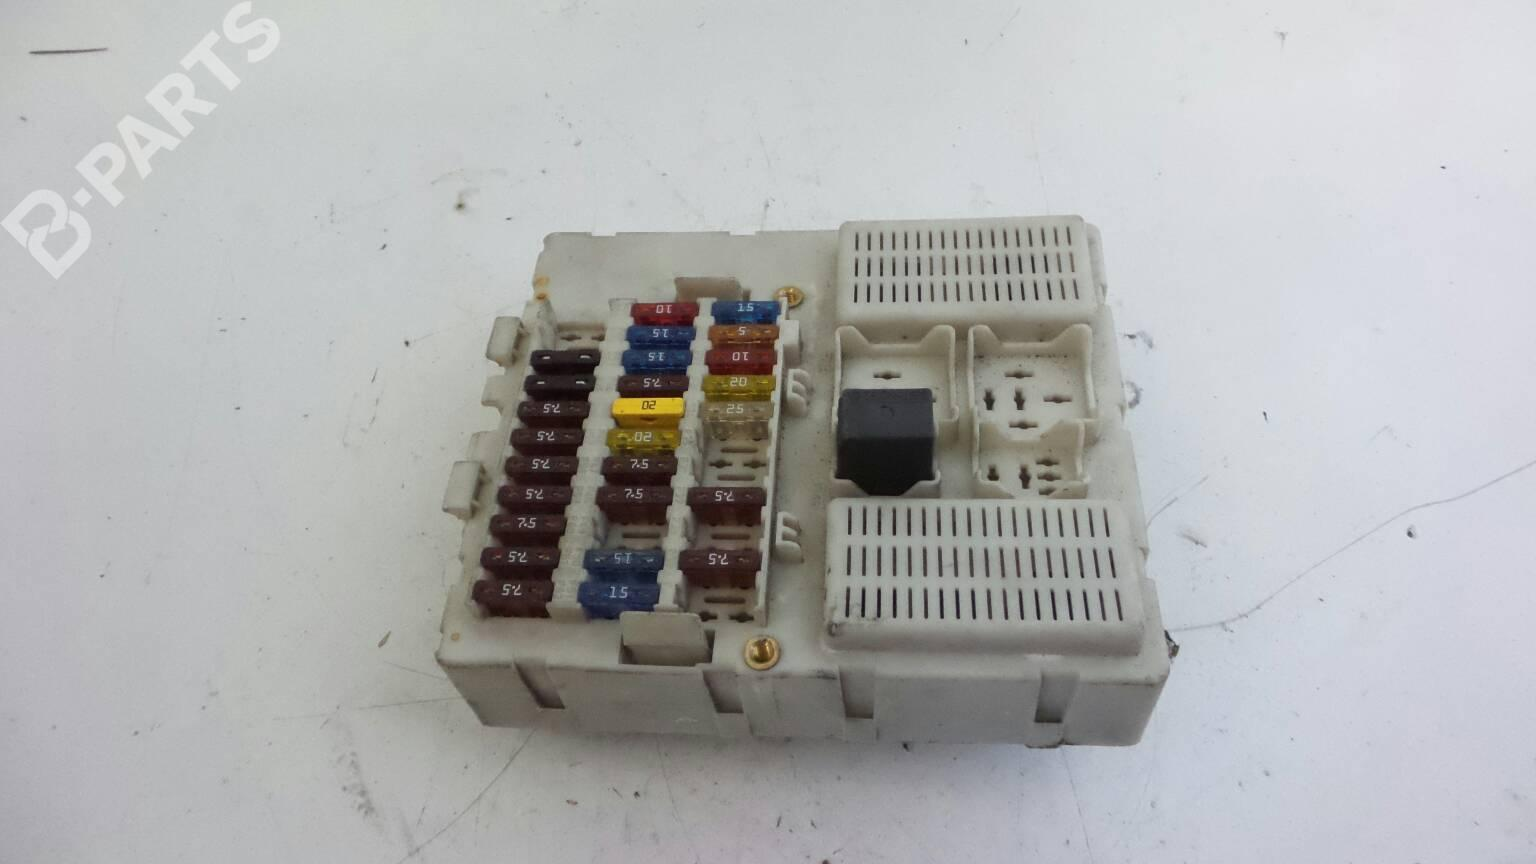 hight resolution of fuse box 7tit 14a073 ba ford transit connect p65 p70